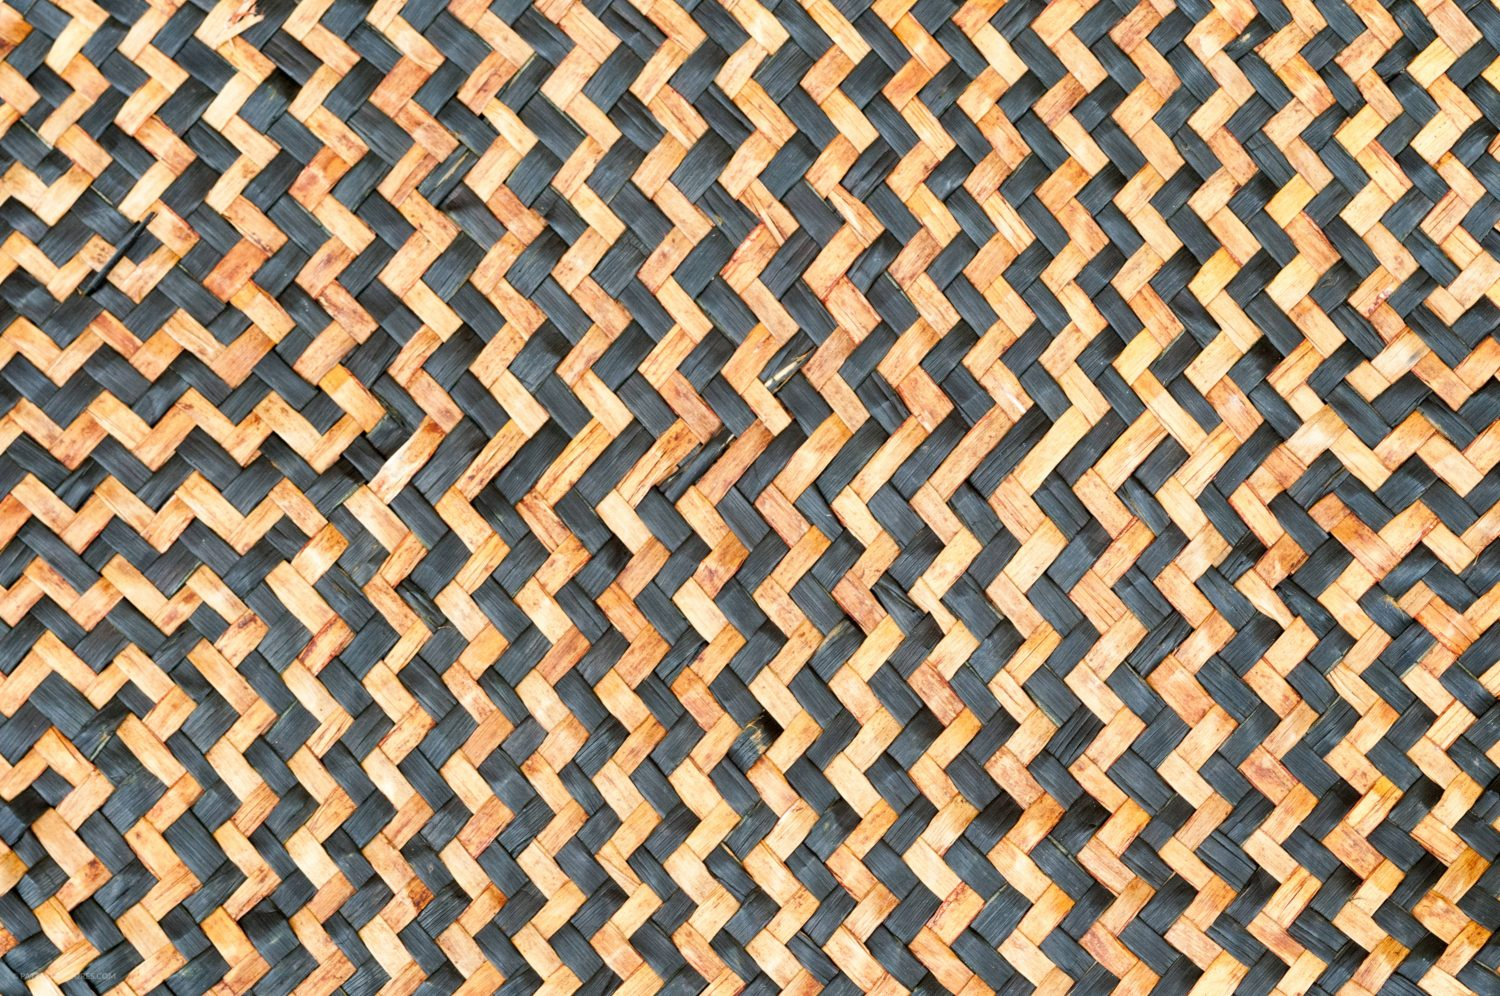 Woven Straw Texture black and natural zig zag pattern